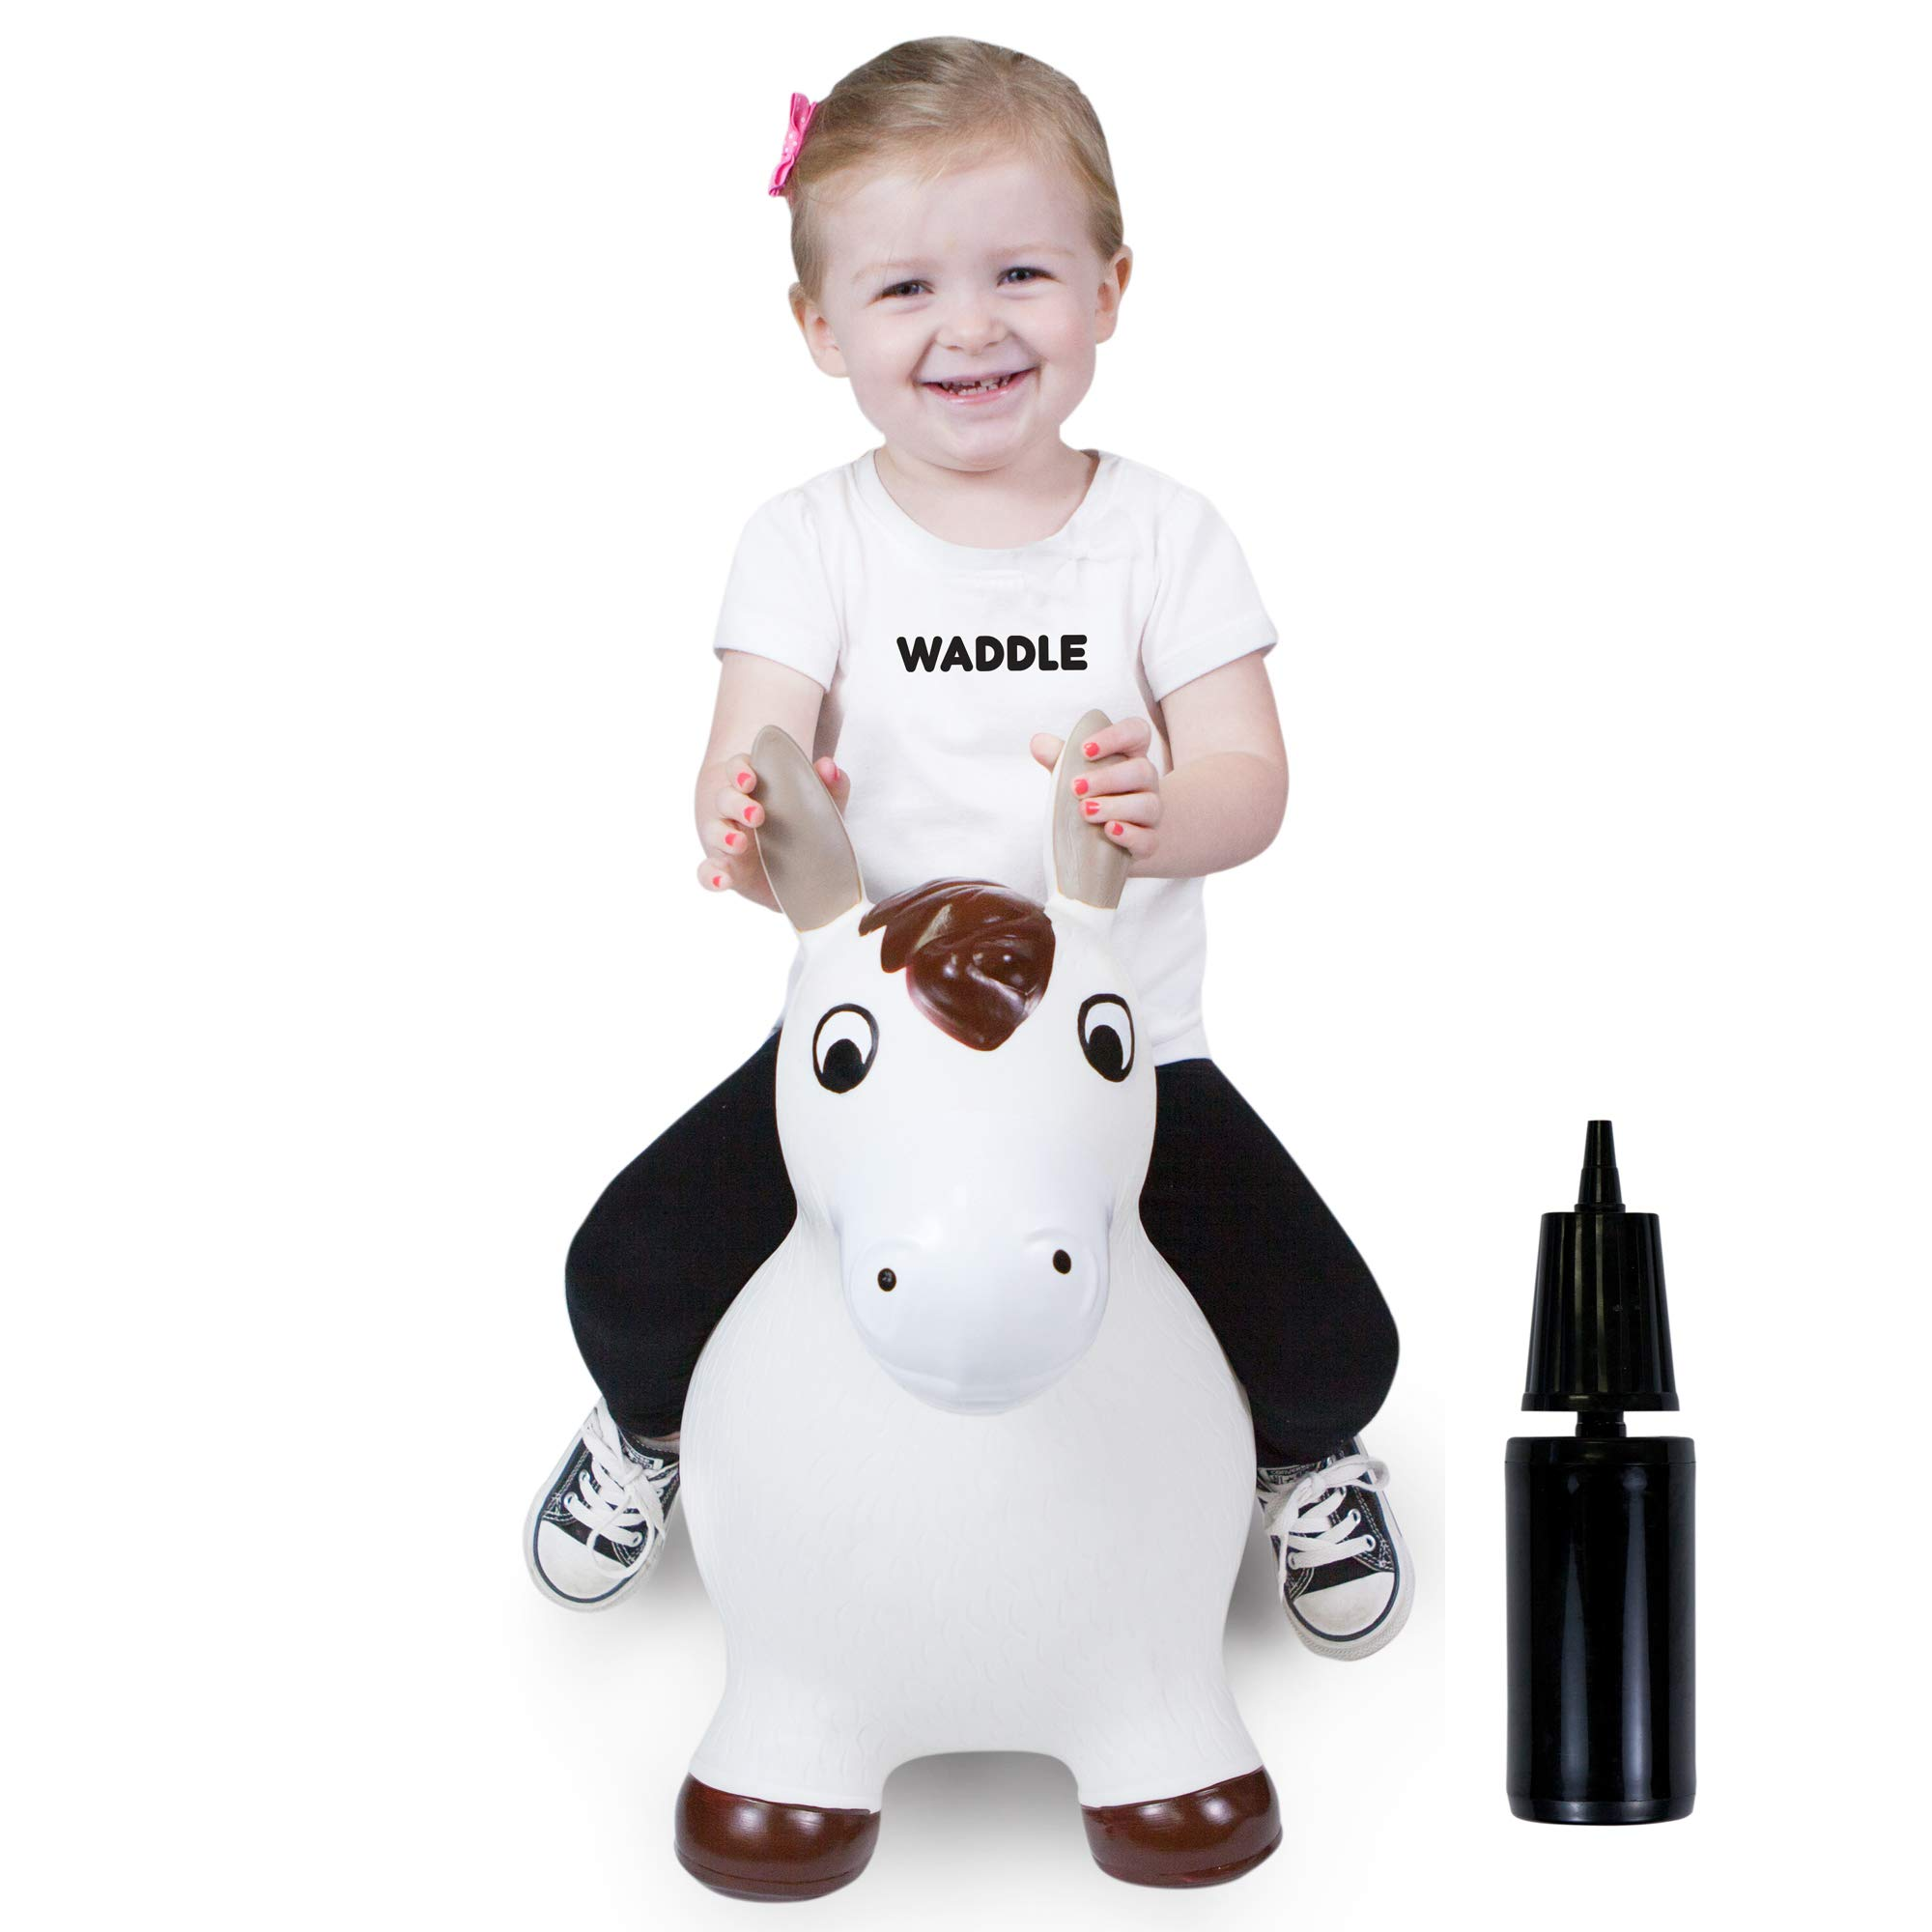 WADDLE Bouncy Horse Hopper for Toddlers Brown White Inflatable Jumping Horse Unisex Ride on Rubber Bouncing Animal Toys for Kids/ Toddlers/ Children/ Boys/ Girls | Hopping Pony Bouncer